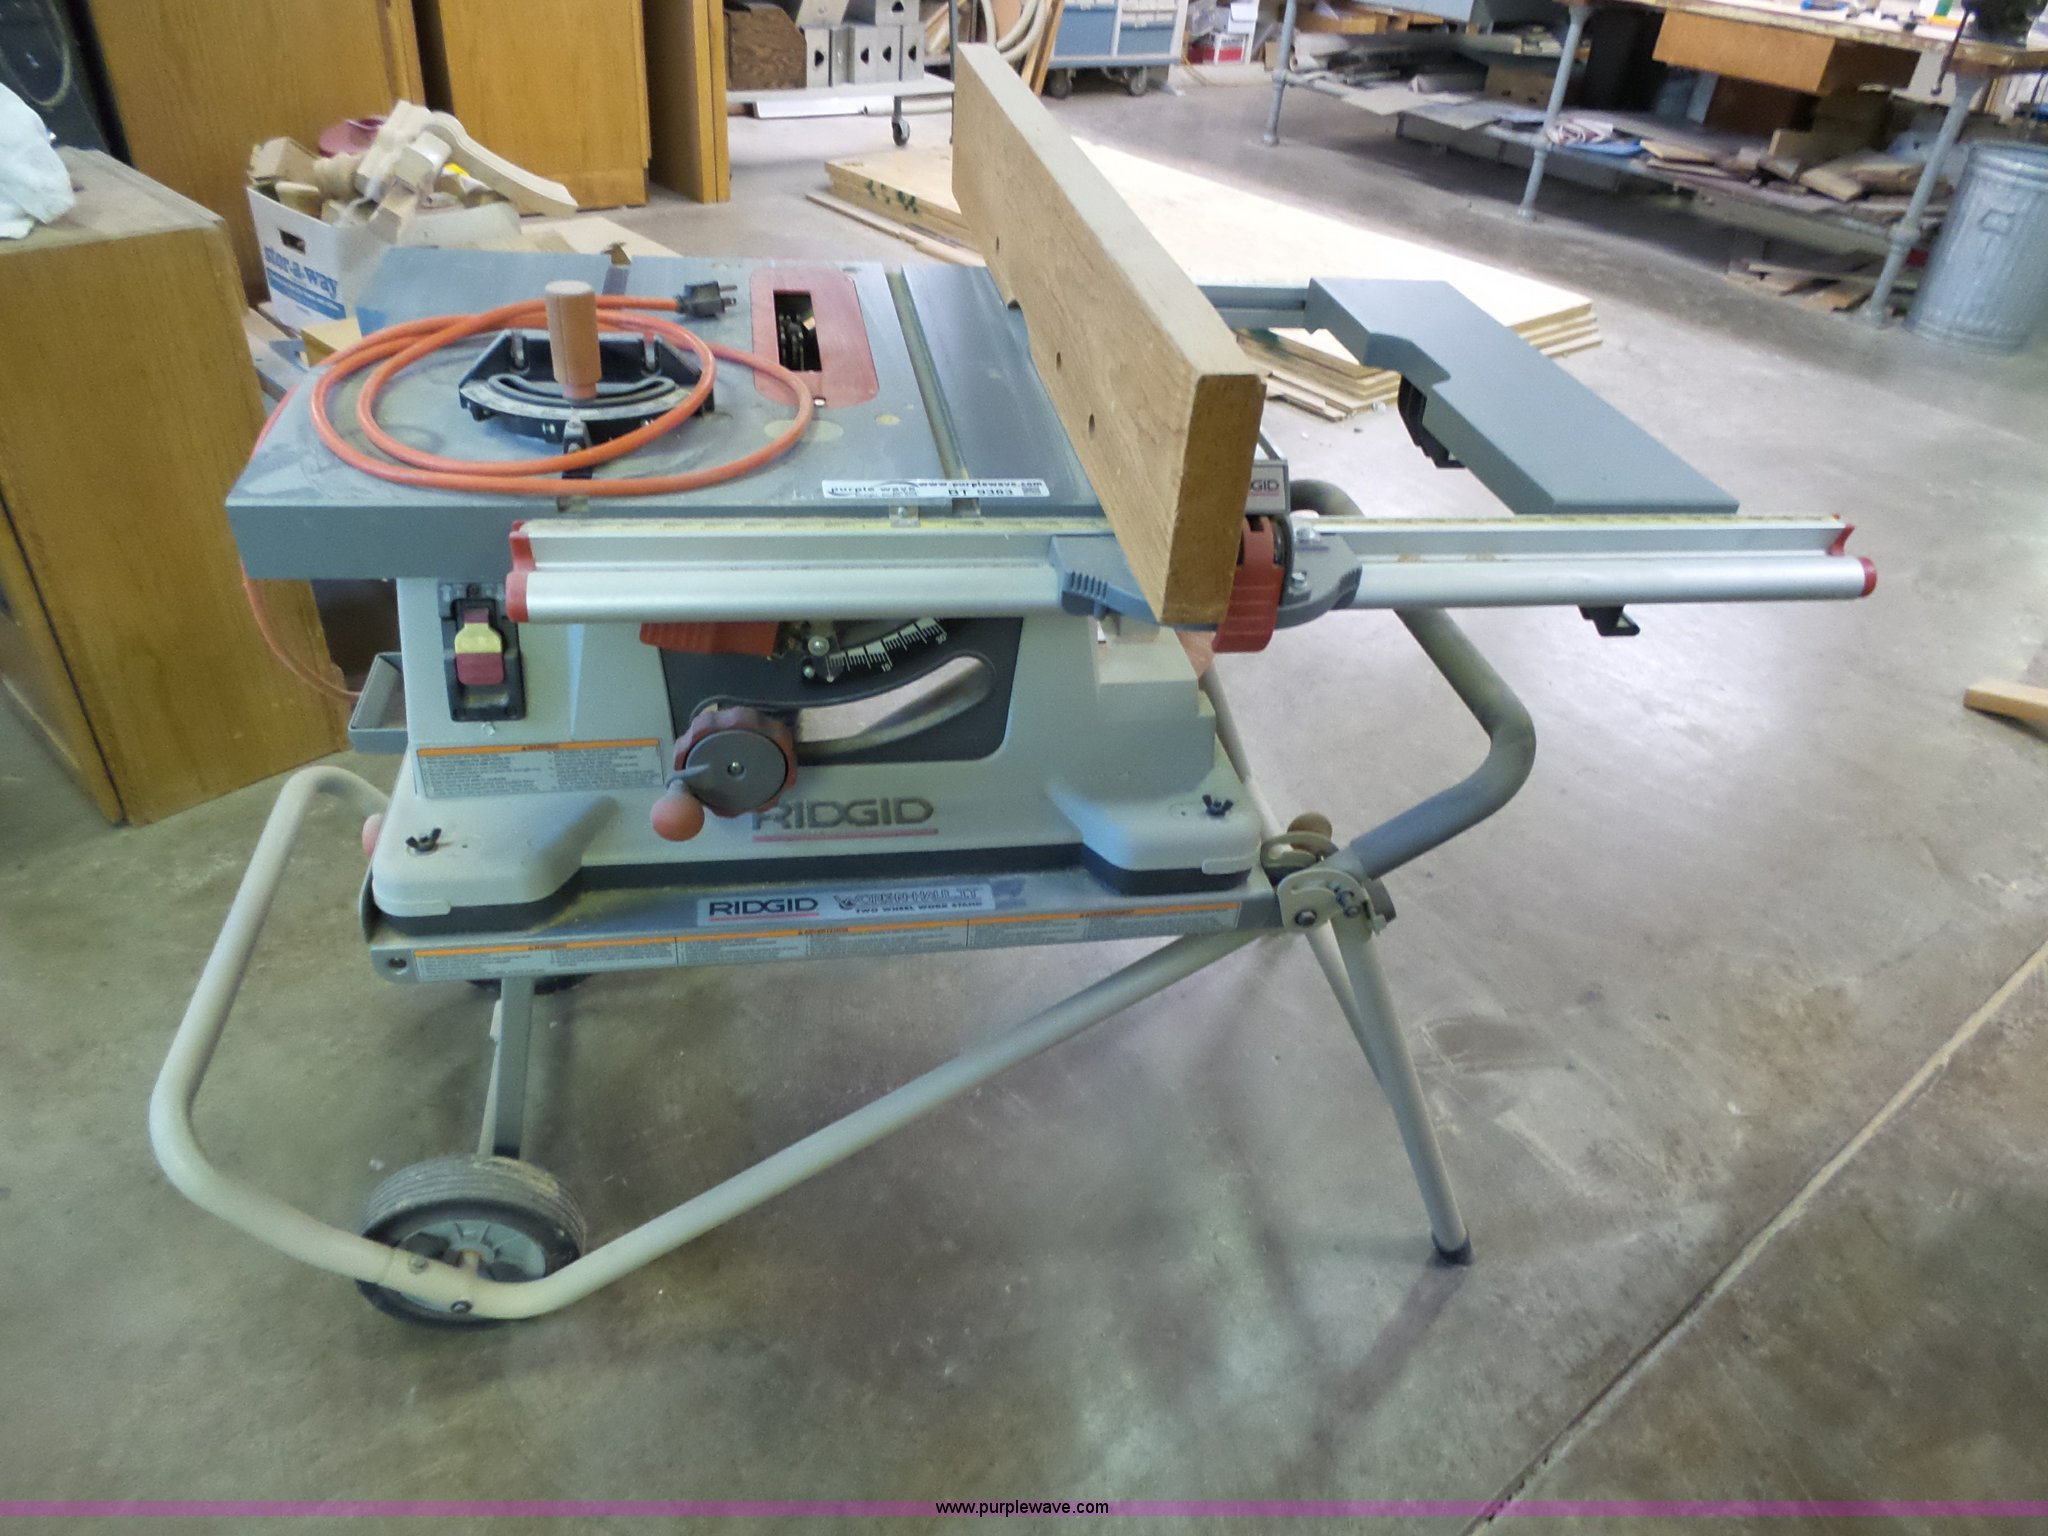 Ridgid ts24000 table saw item bt9383 sold april 5 gover bt9383 image for item bt9383 ridgid ts24000 table saw greentooth Images